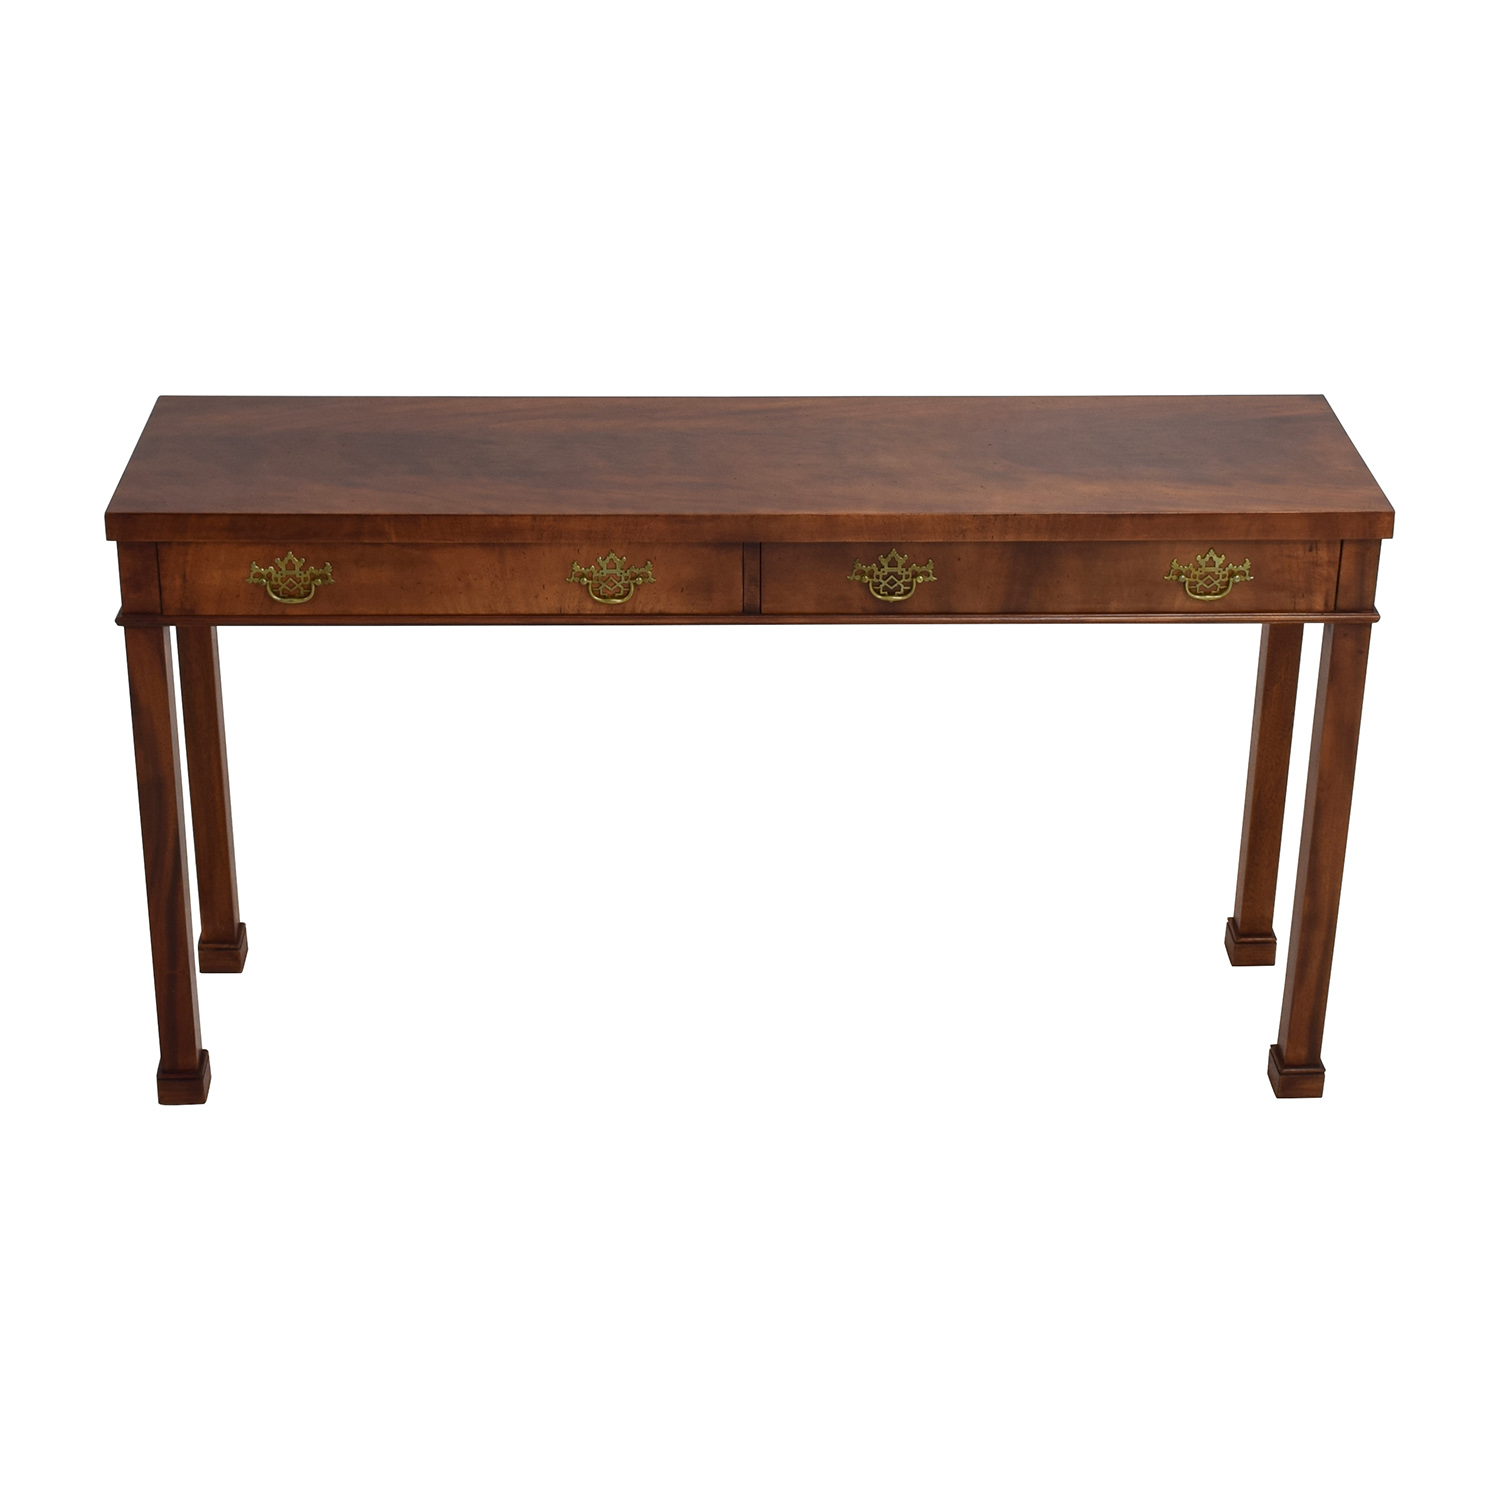 Custom Two-Drawer Wood Sofa Table brown